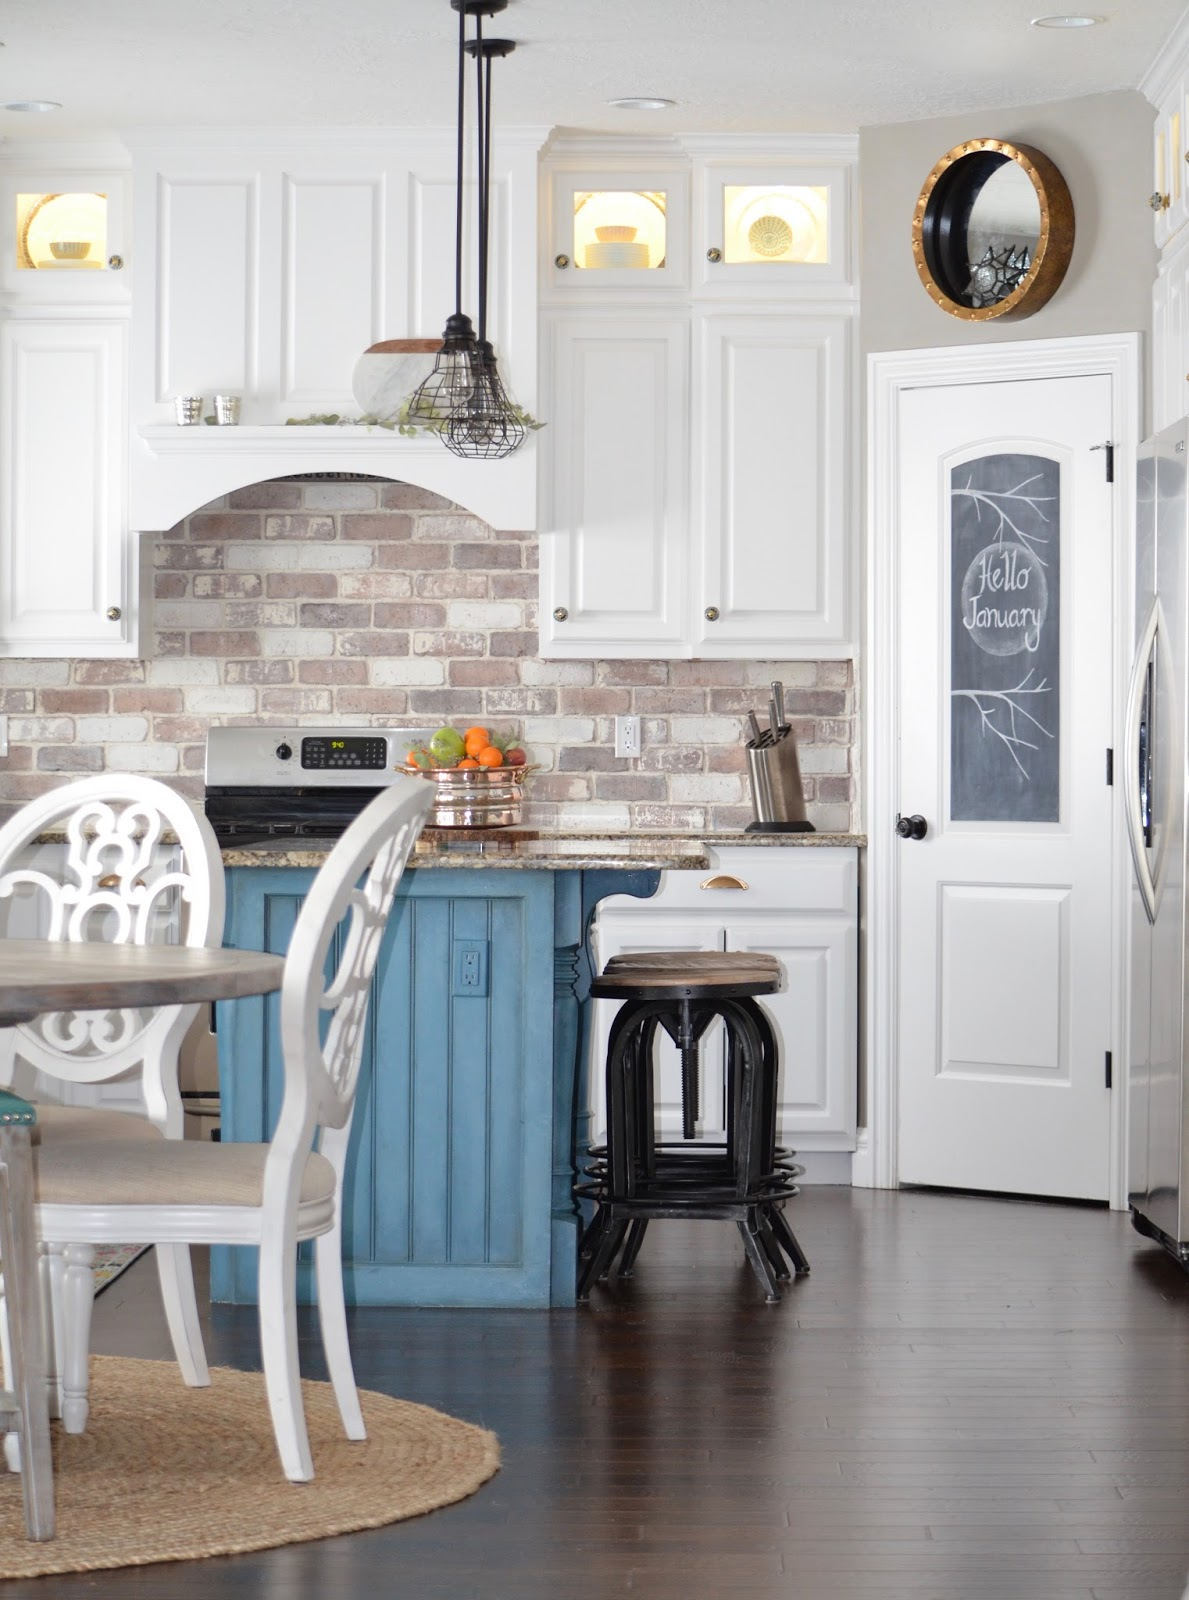 Diy Brick Backsplash Tutorial Farmhouse Kitchen Veneer